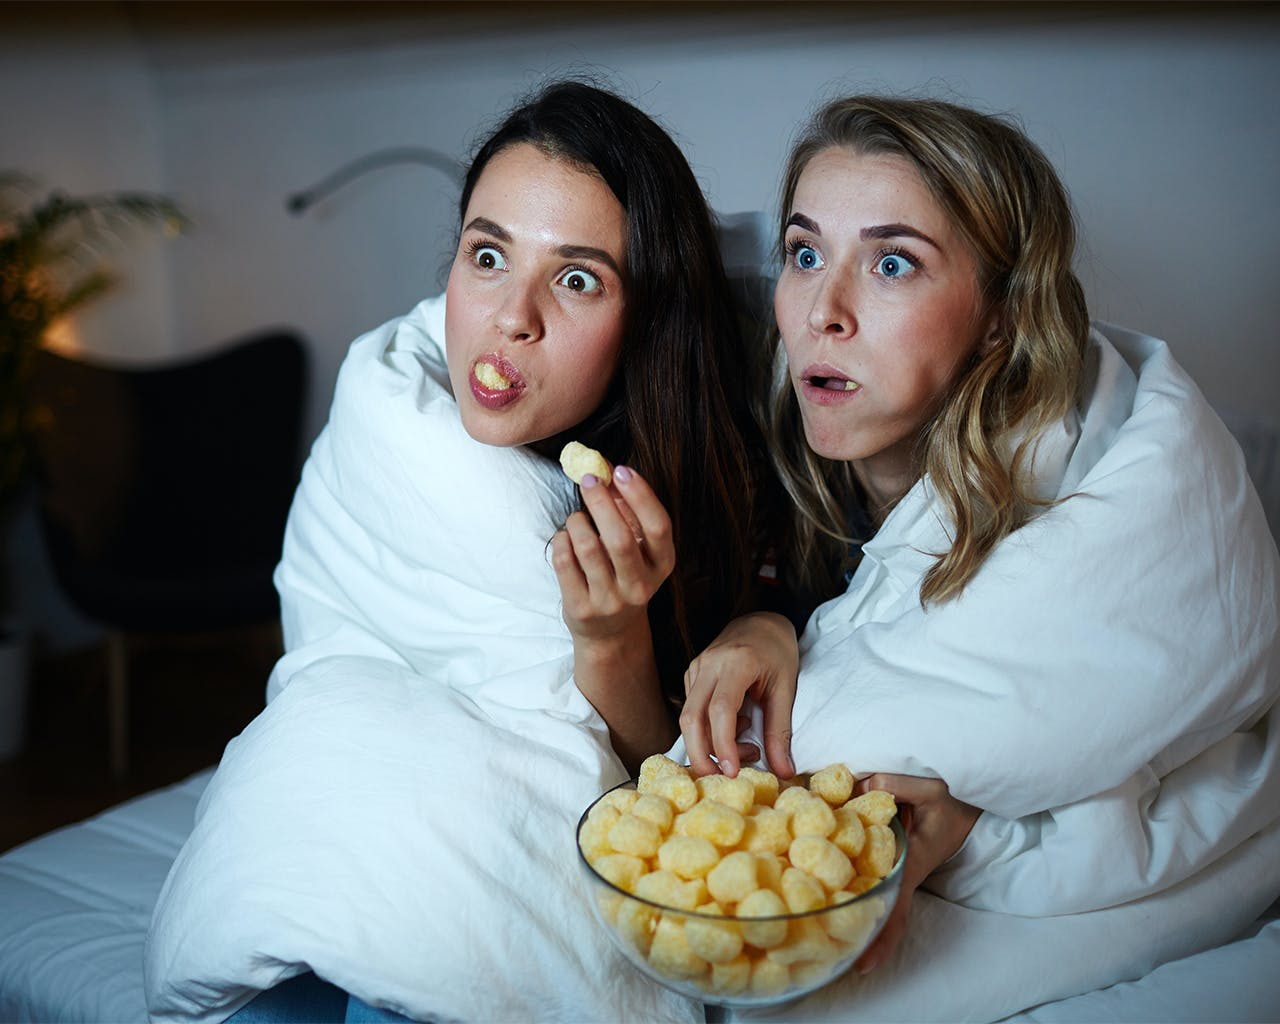 Virtual Movie Date: 8 Apps You Can Use To Start A Watch Party With Long-distance Friends